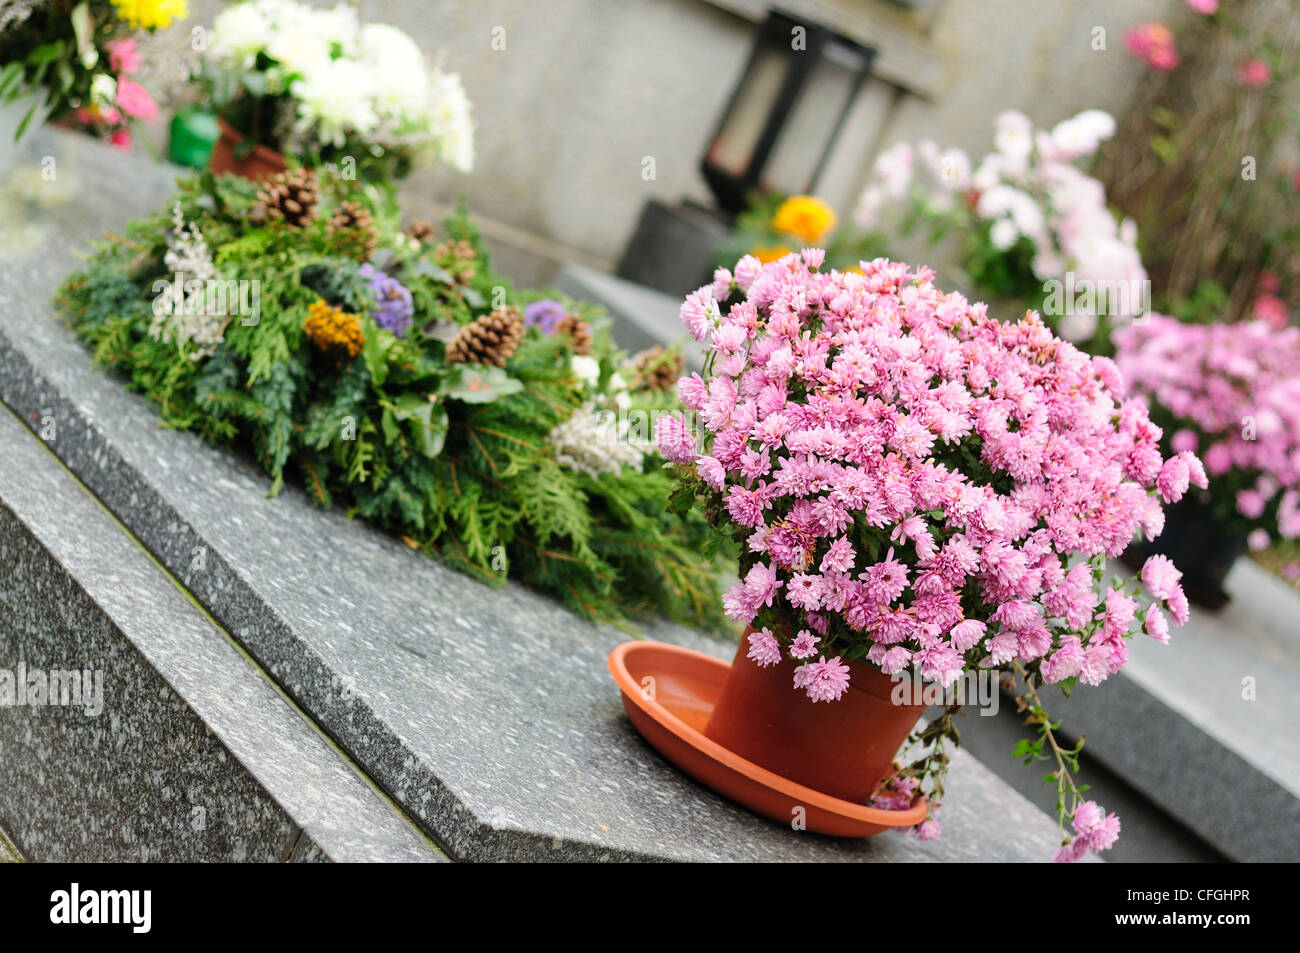 Funeral flowers stock photos funeral flowers stock images alamy funeral flowers placed on the grave at all souls holiday stock image izmirmasajfo